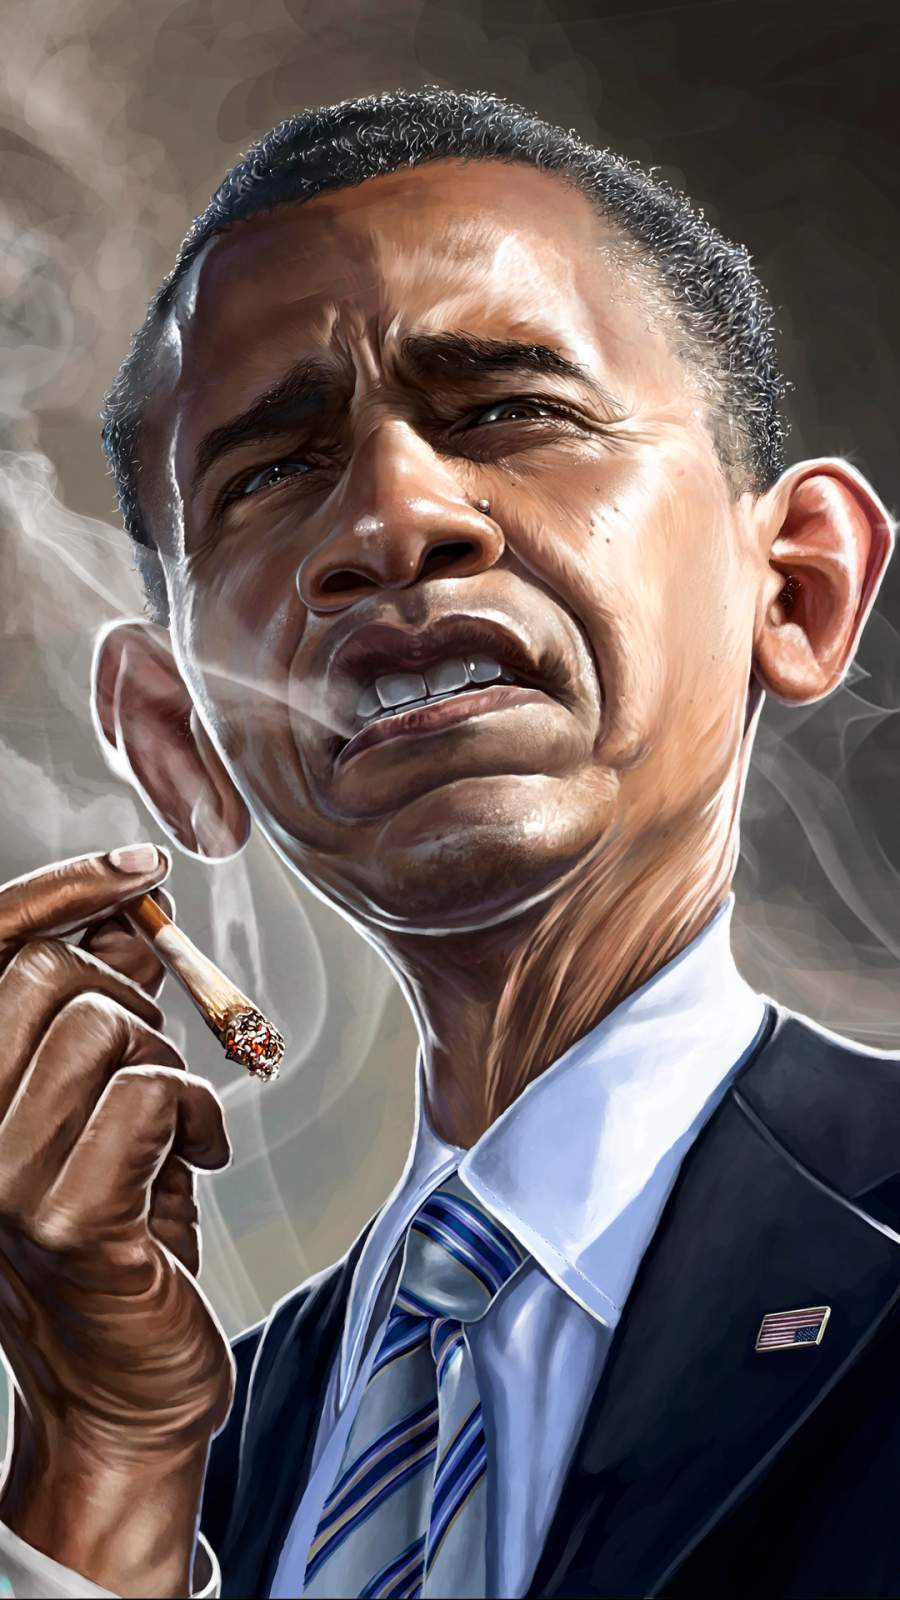 Anime Lonely Girl Wallpaper Barack Obama Smoking Iphone Wallpaper Iphone Wallpapers